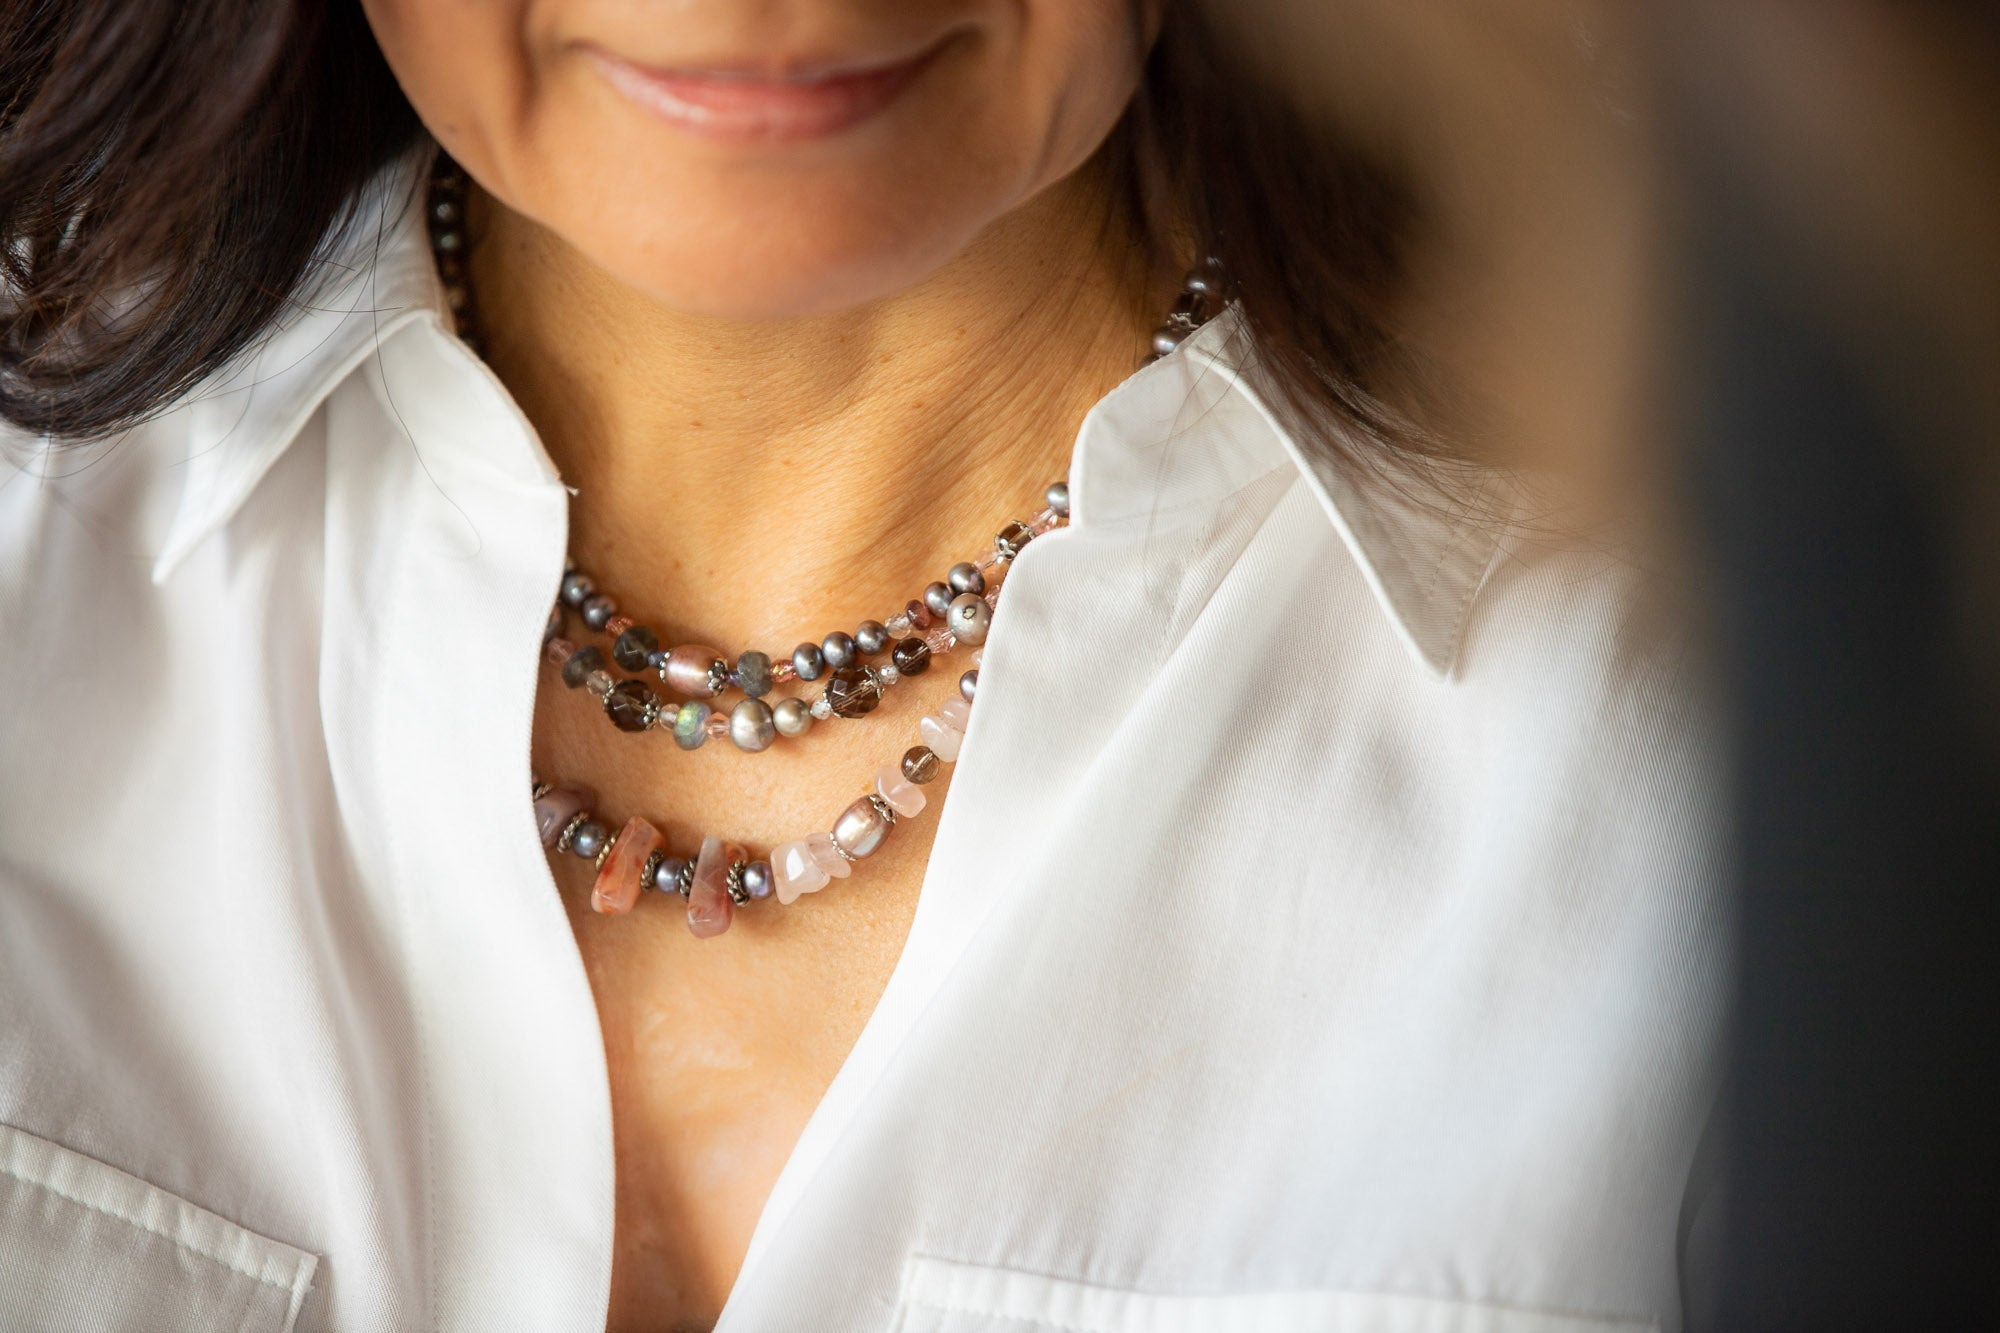 A Buyer's Guide To Pearls